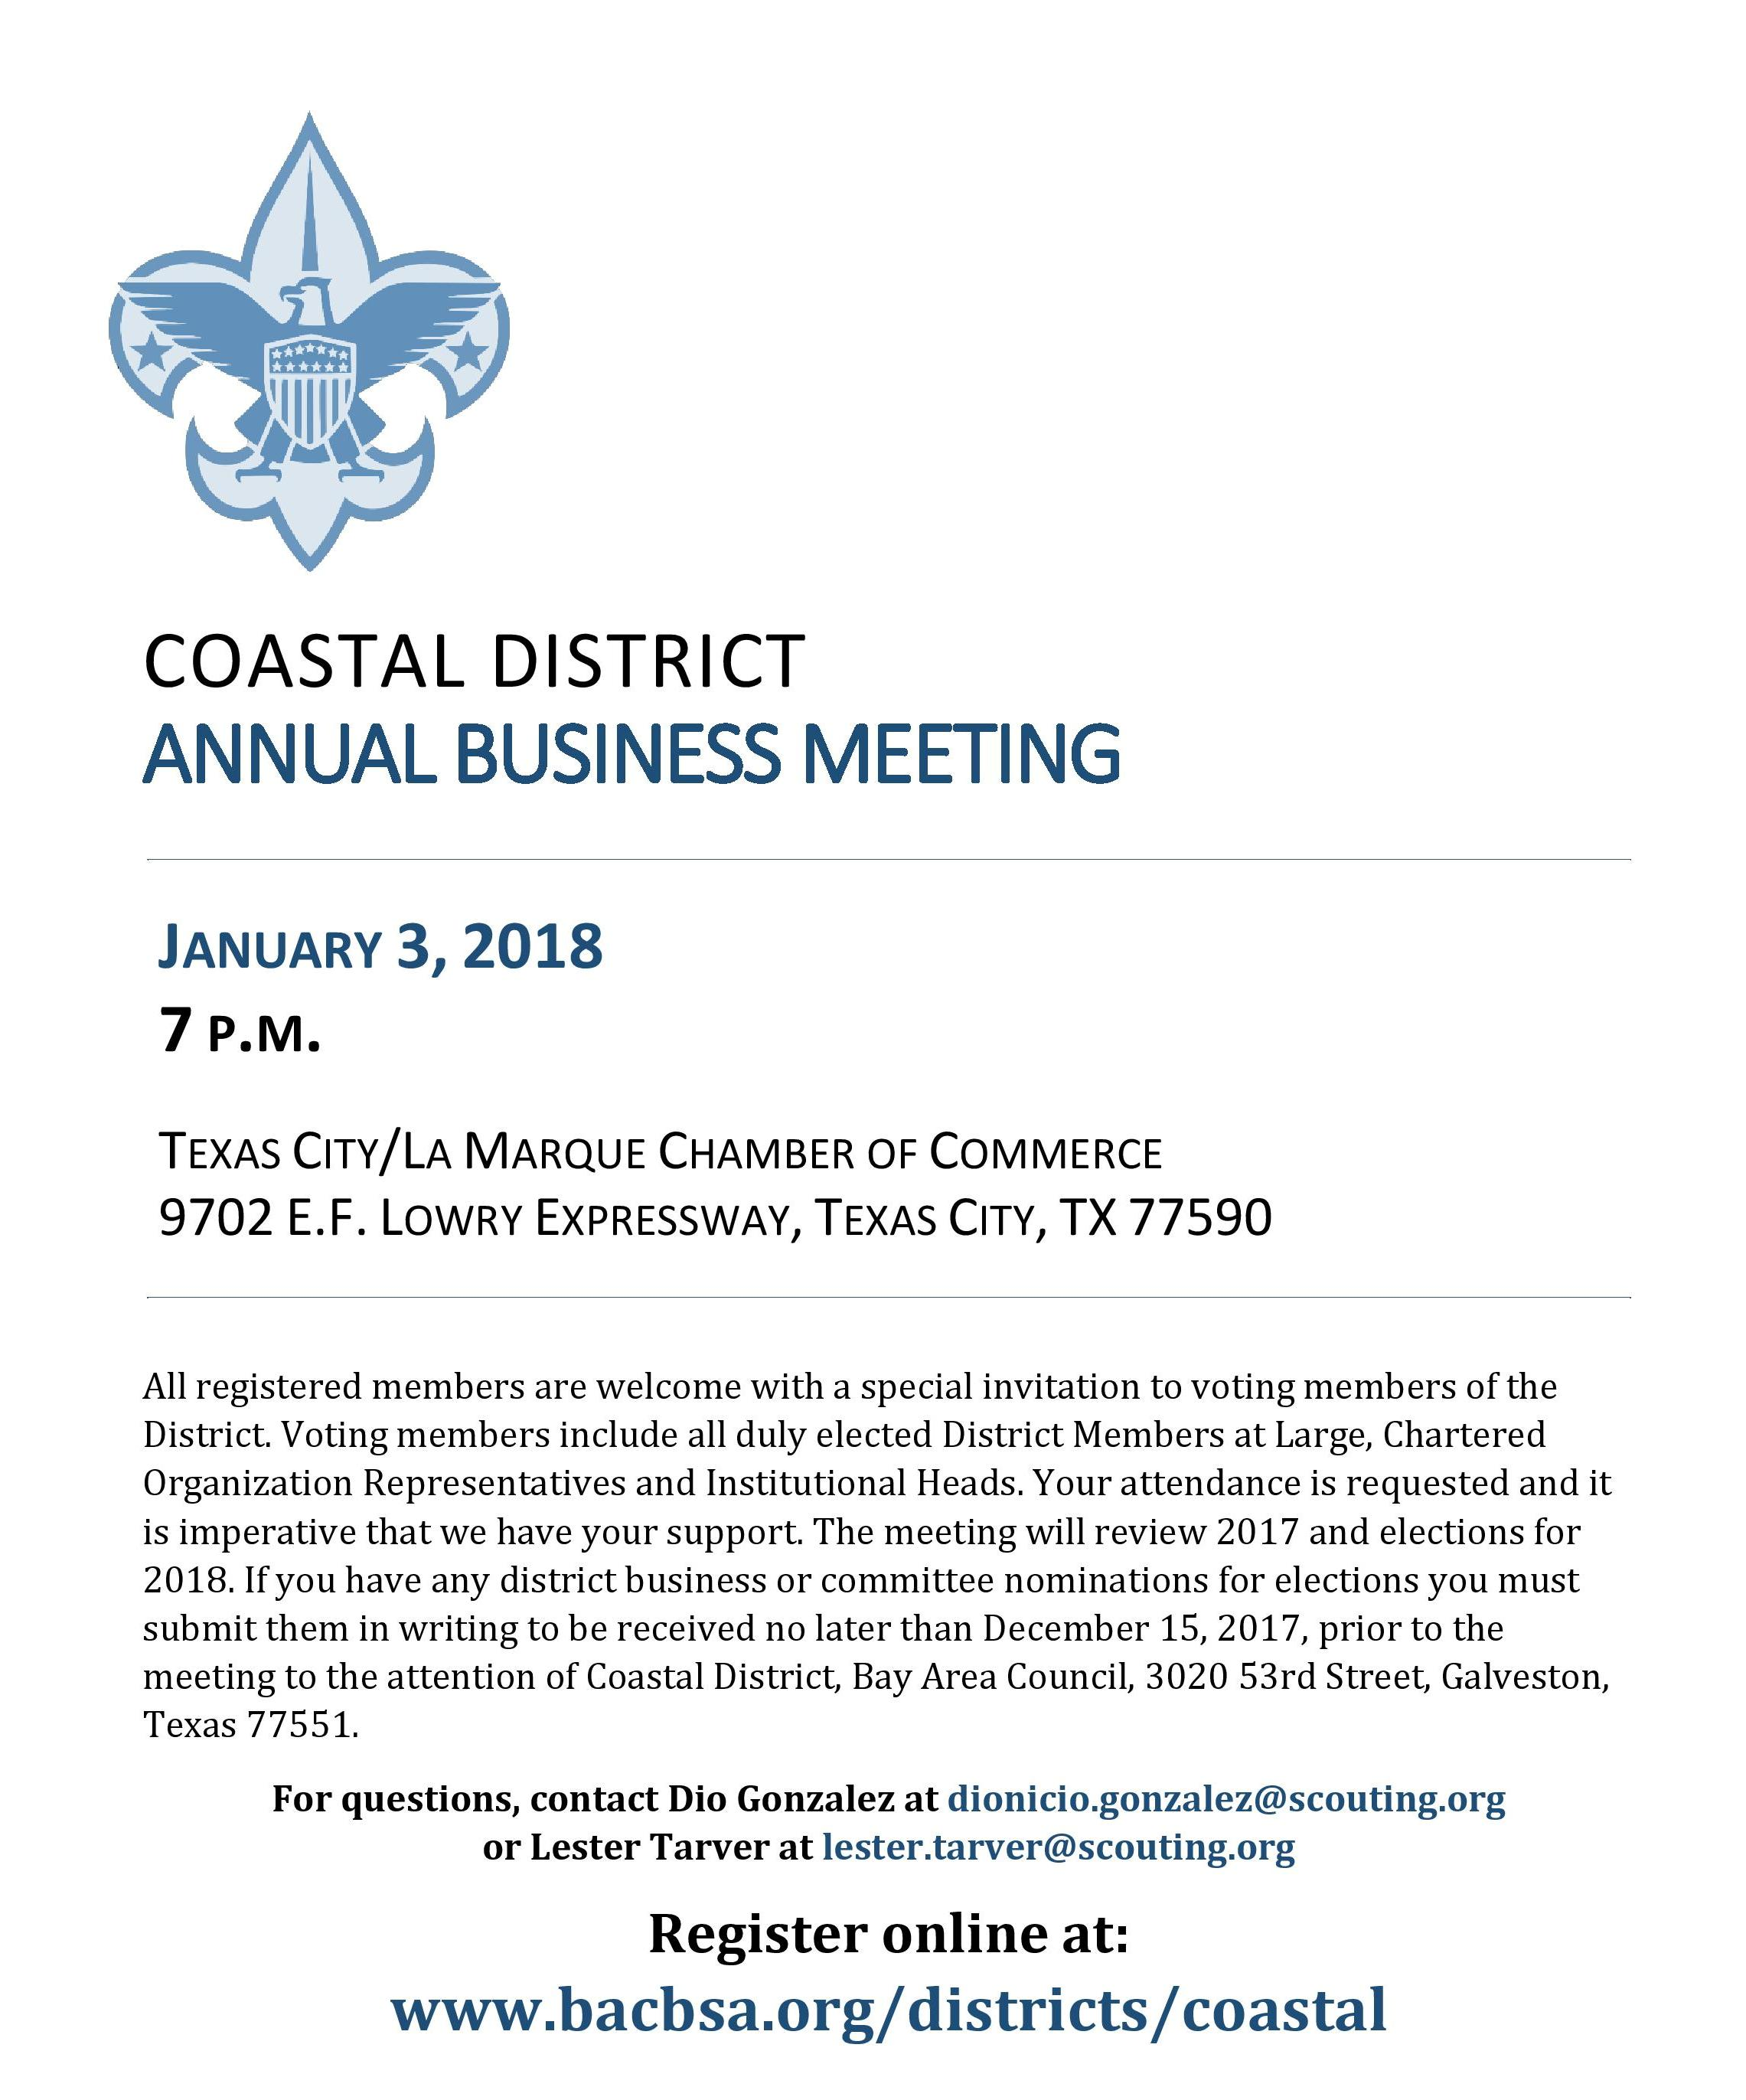 Coastal Annual Business Meeting